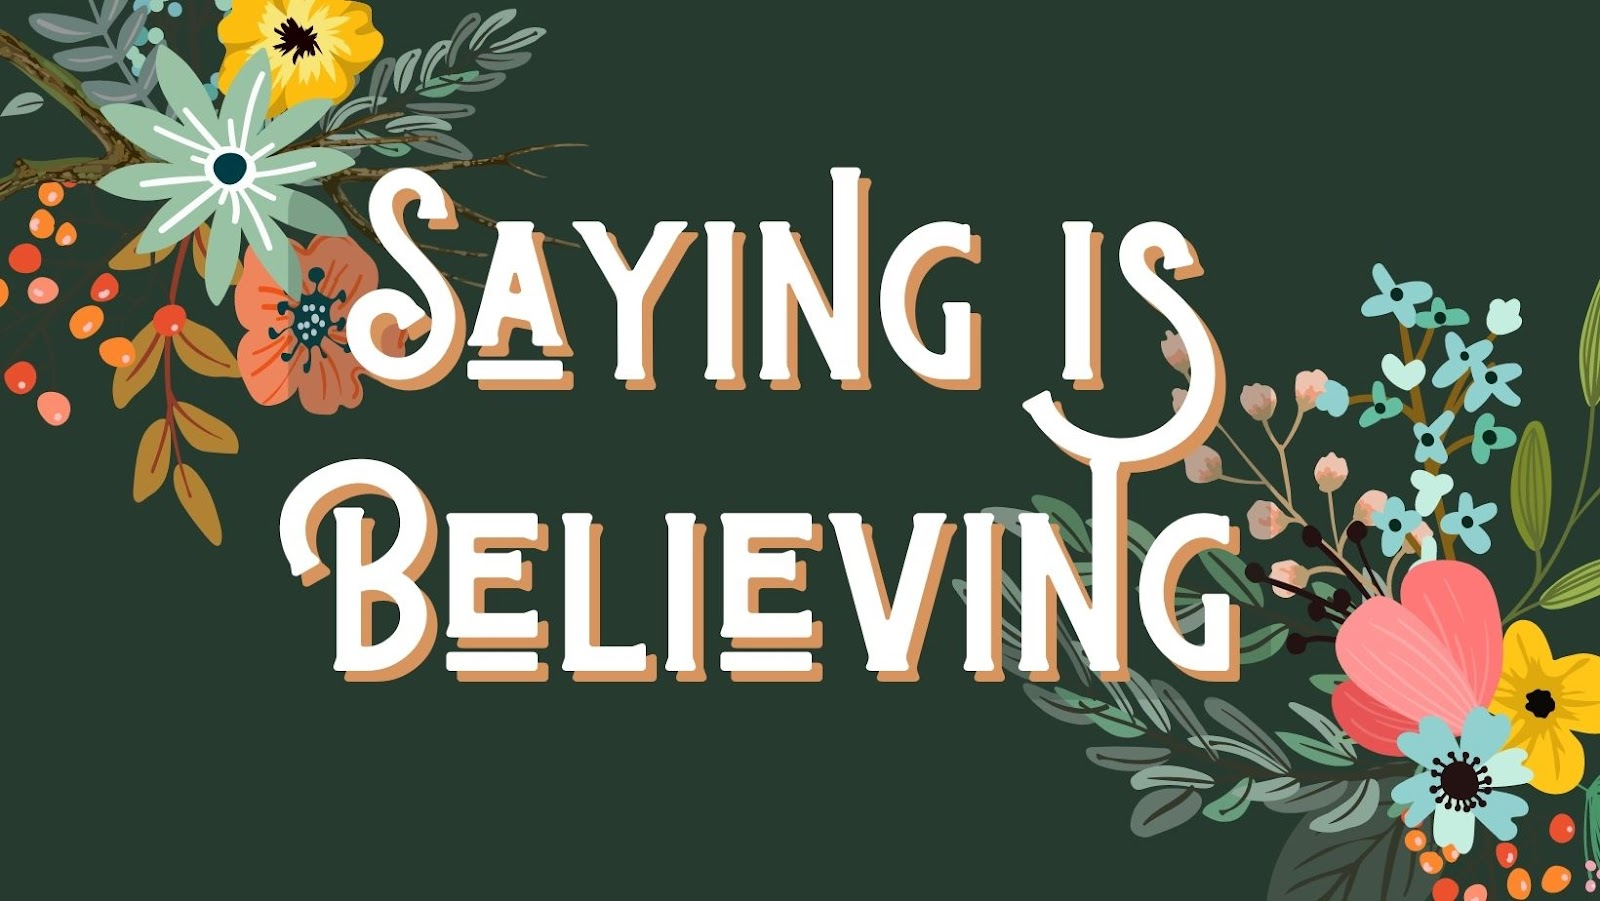 confidence affirmation: saying is believing